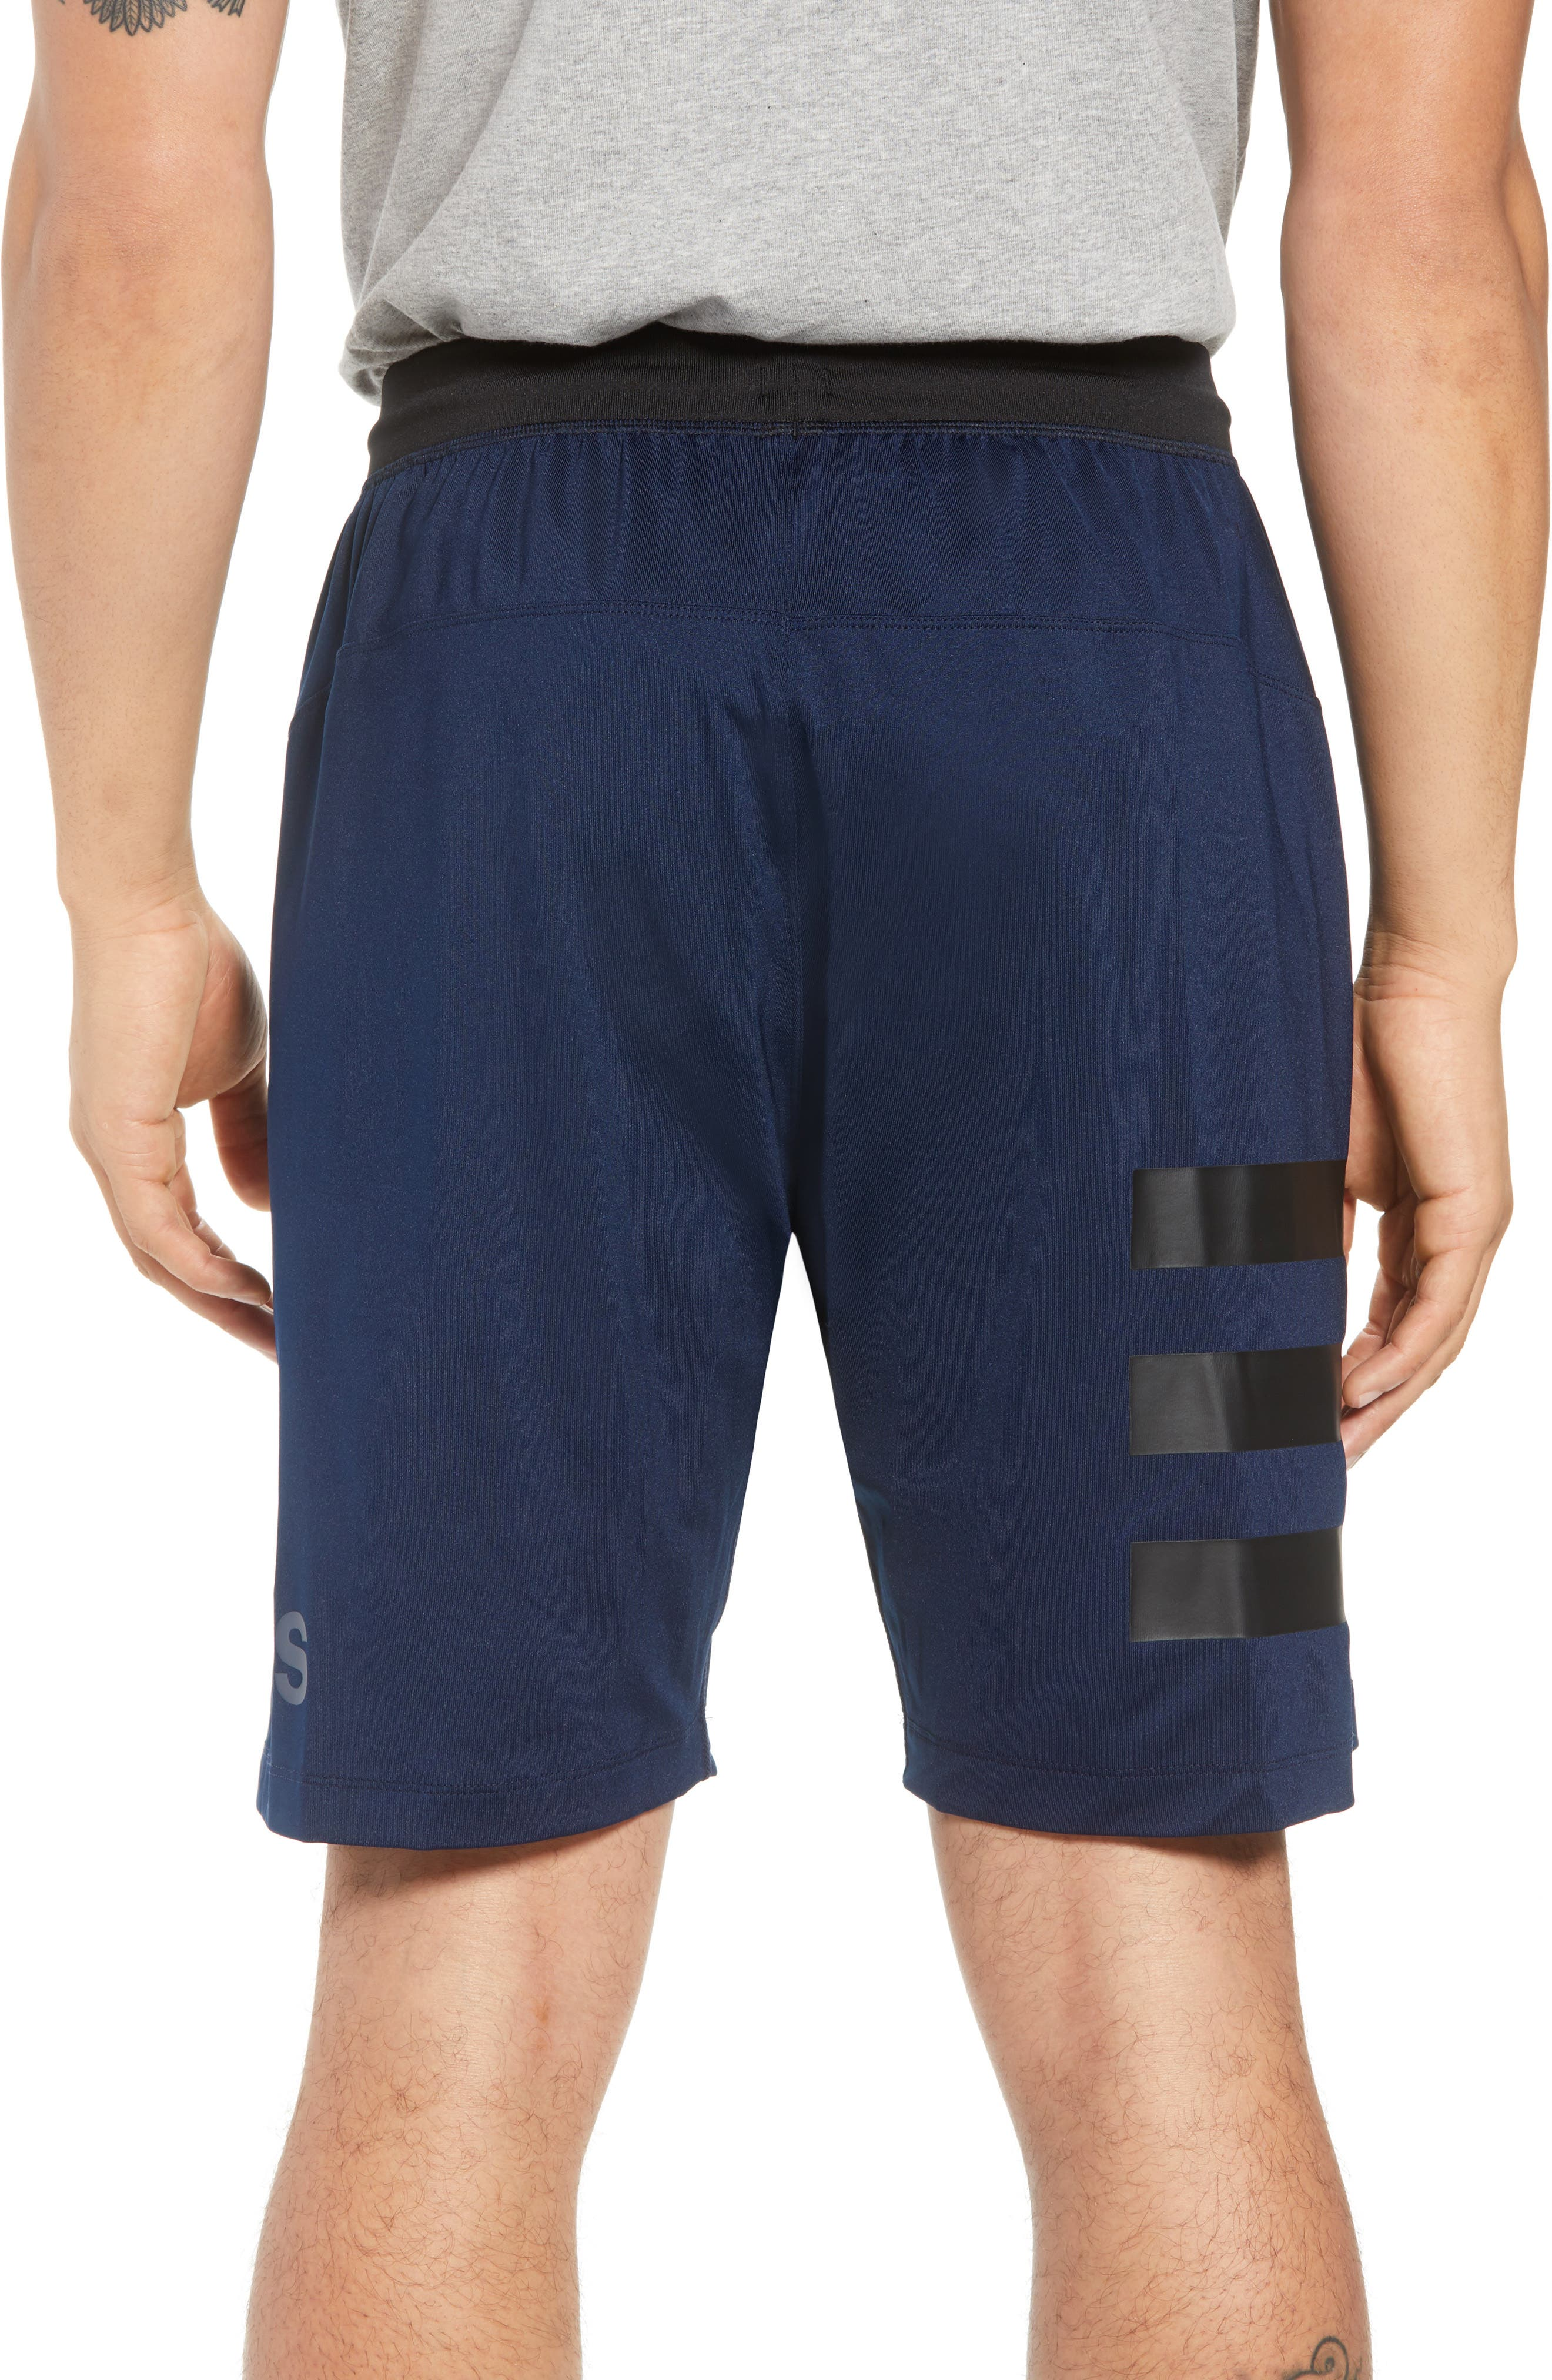 SB Hype Icon Shorts,                             Alternate thumbnail 2, color,                             COLLEGIATE NAVY/ BLACK